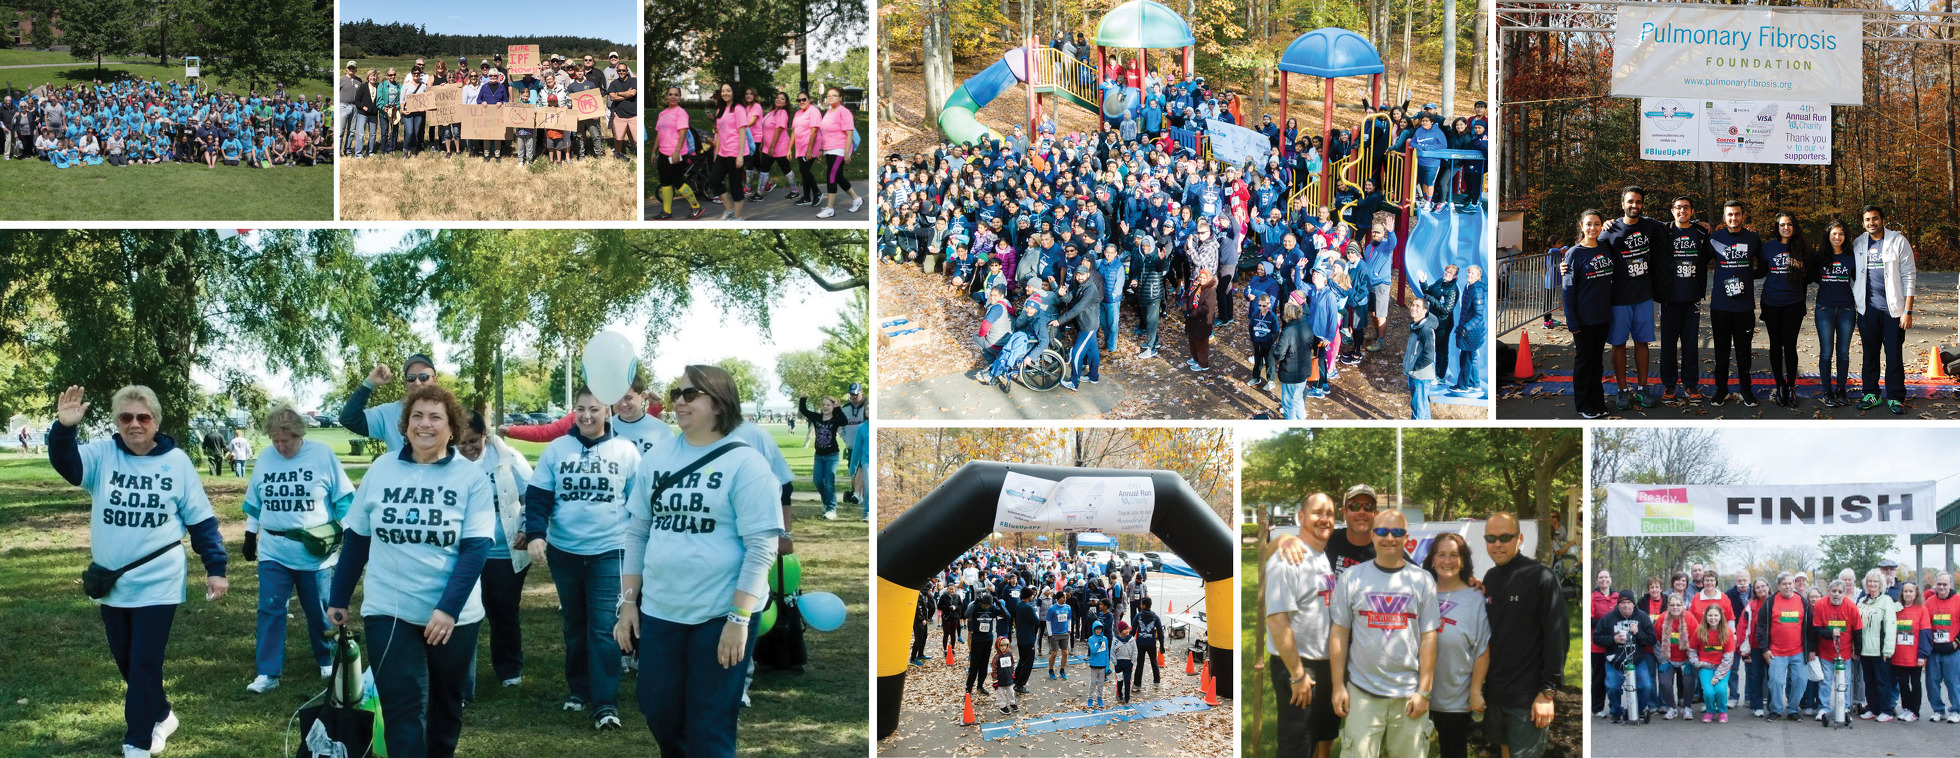 Walk To End Pulmonary Fibrosis | Houston